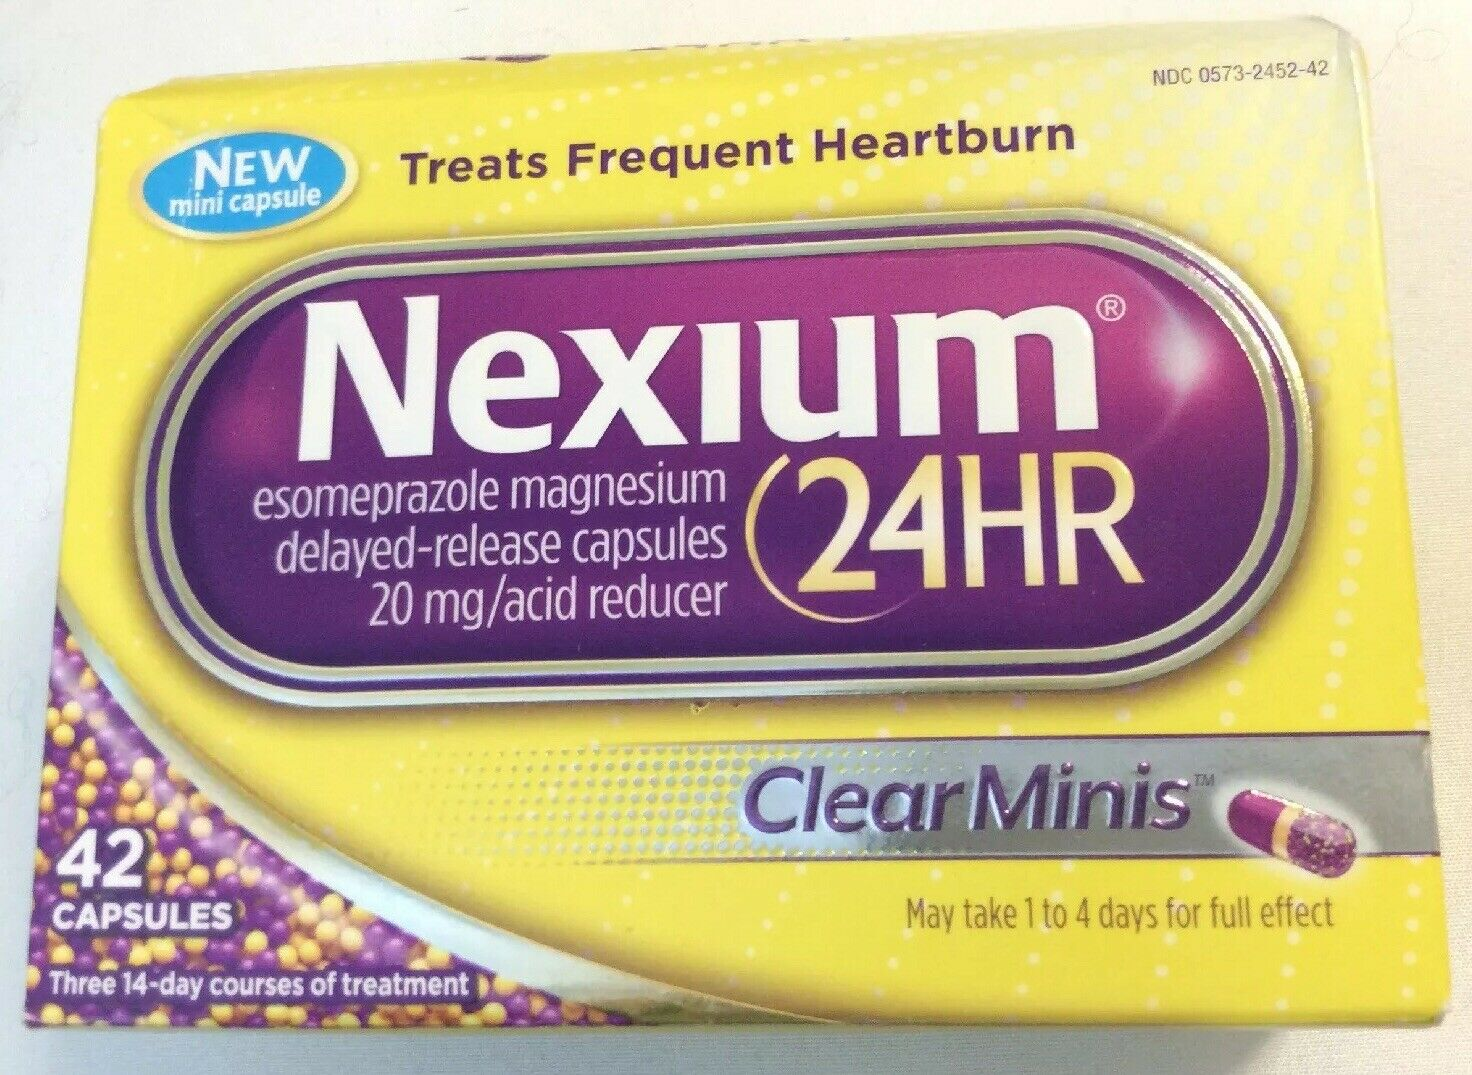 Nexium 24HR Clear Minis 42 Capsules Treats Frequent Heartburn Exp:9/2022 Or Bett 1